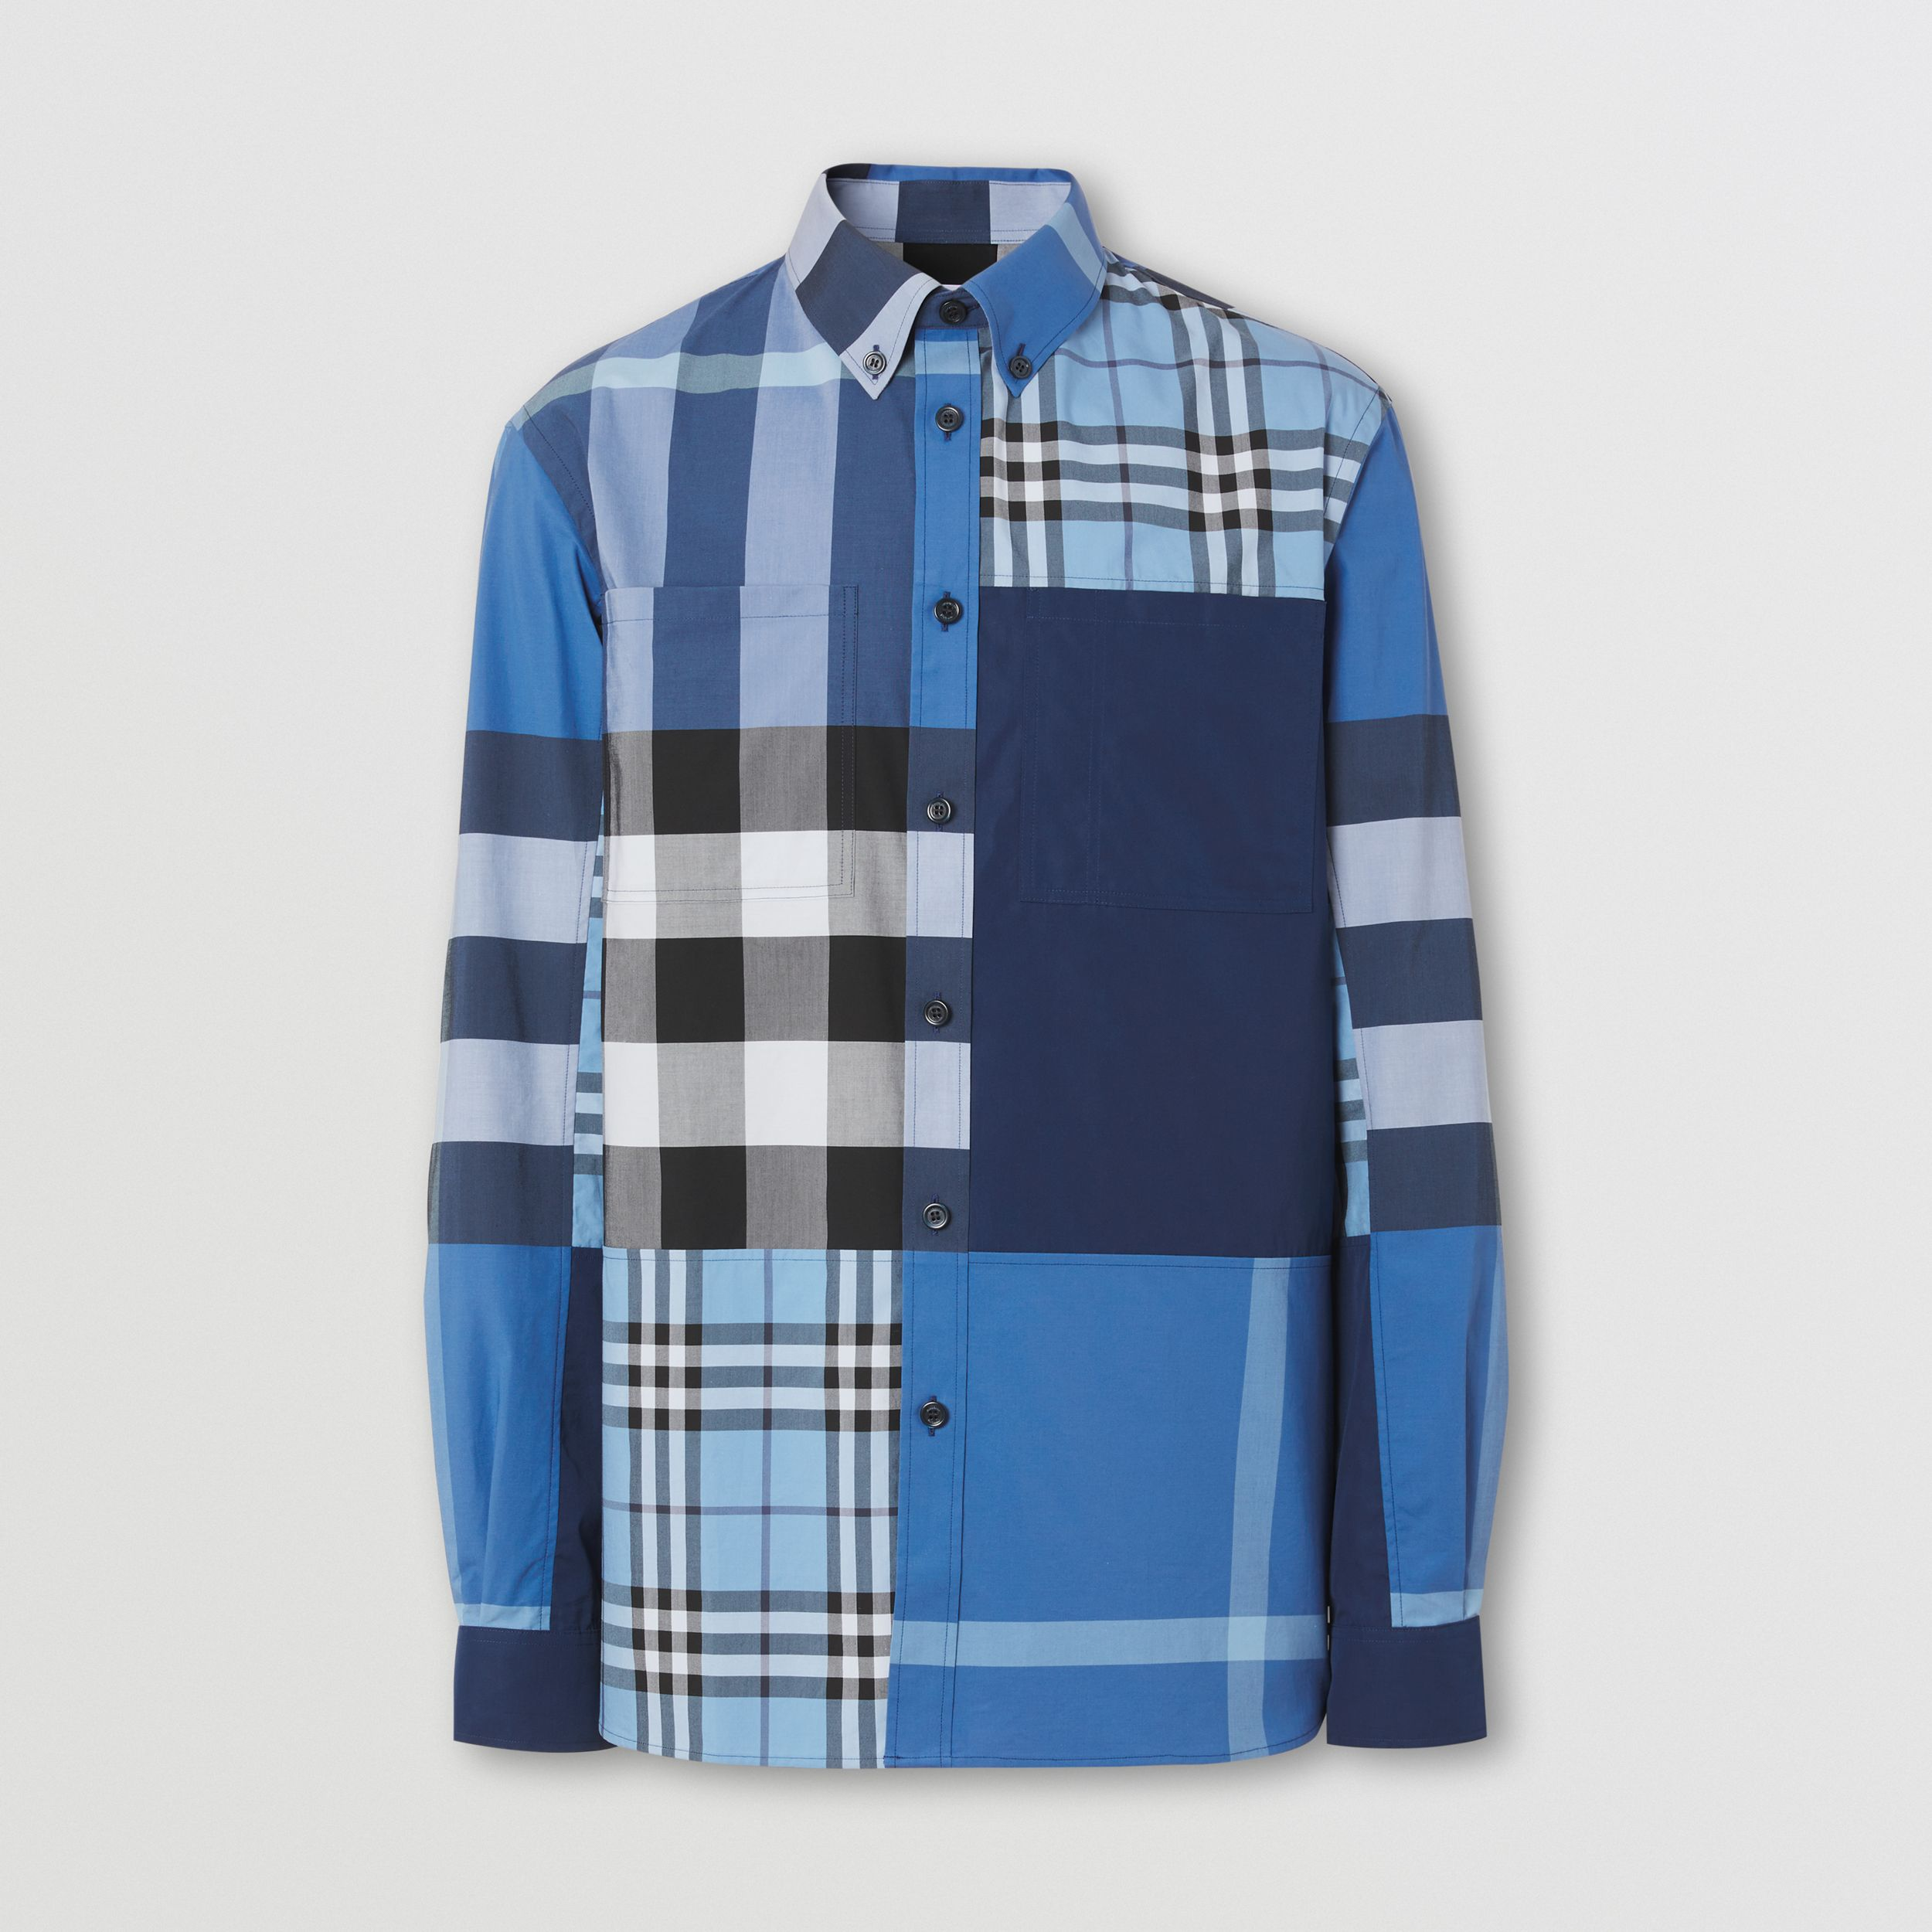 Patchwork Check Cotton Poplin Shirt in Vivid Cobalt - Men | Burberry United Kingdom - 4